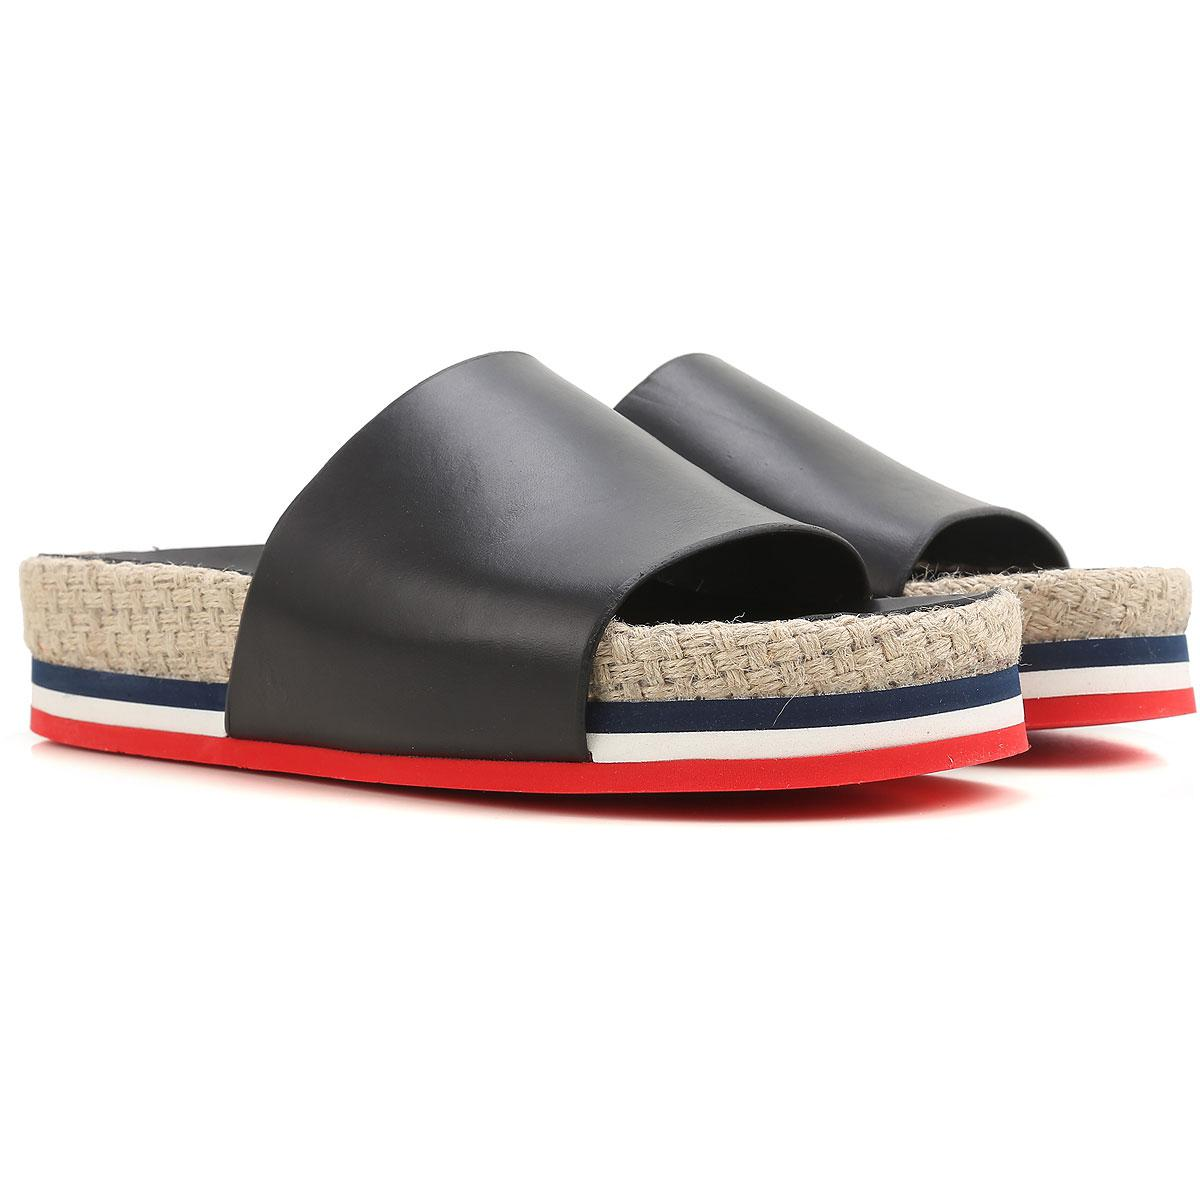 506abfdea84a Lyst - Moncler Sandals For Women On Sale In Outlet in Black - Save 31%